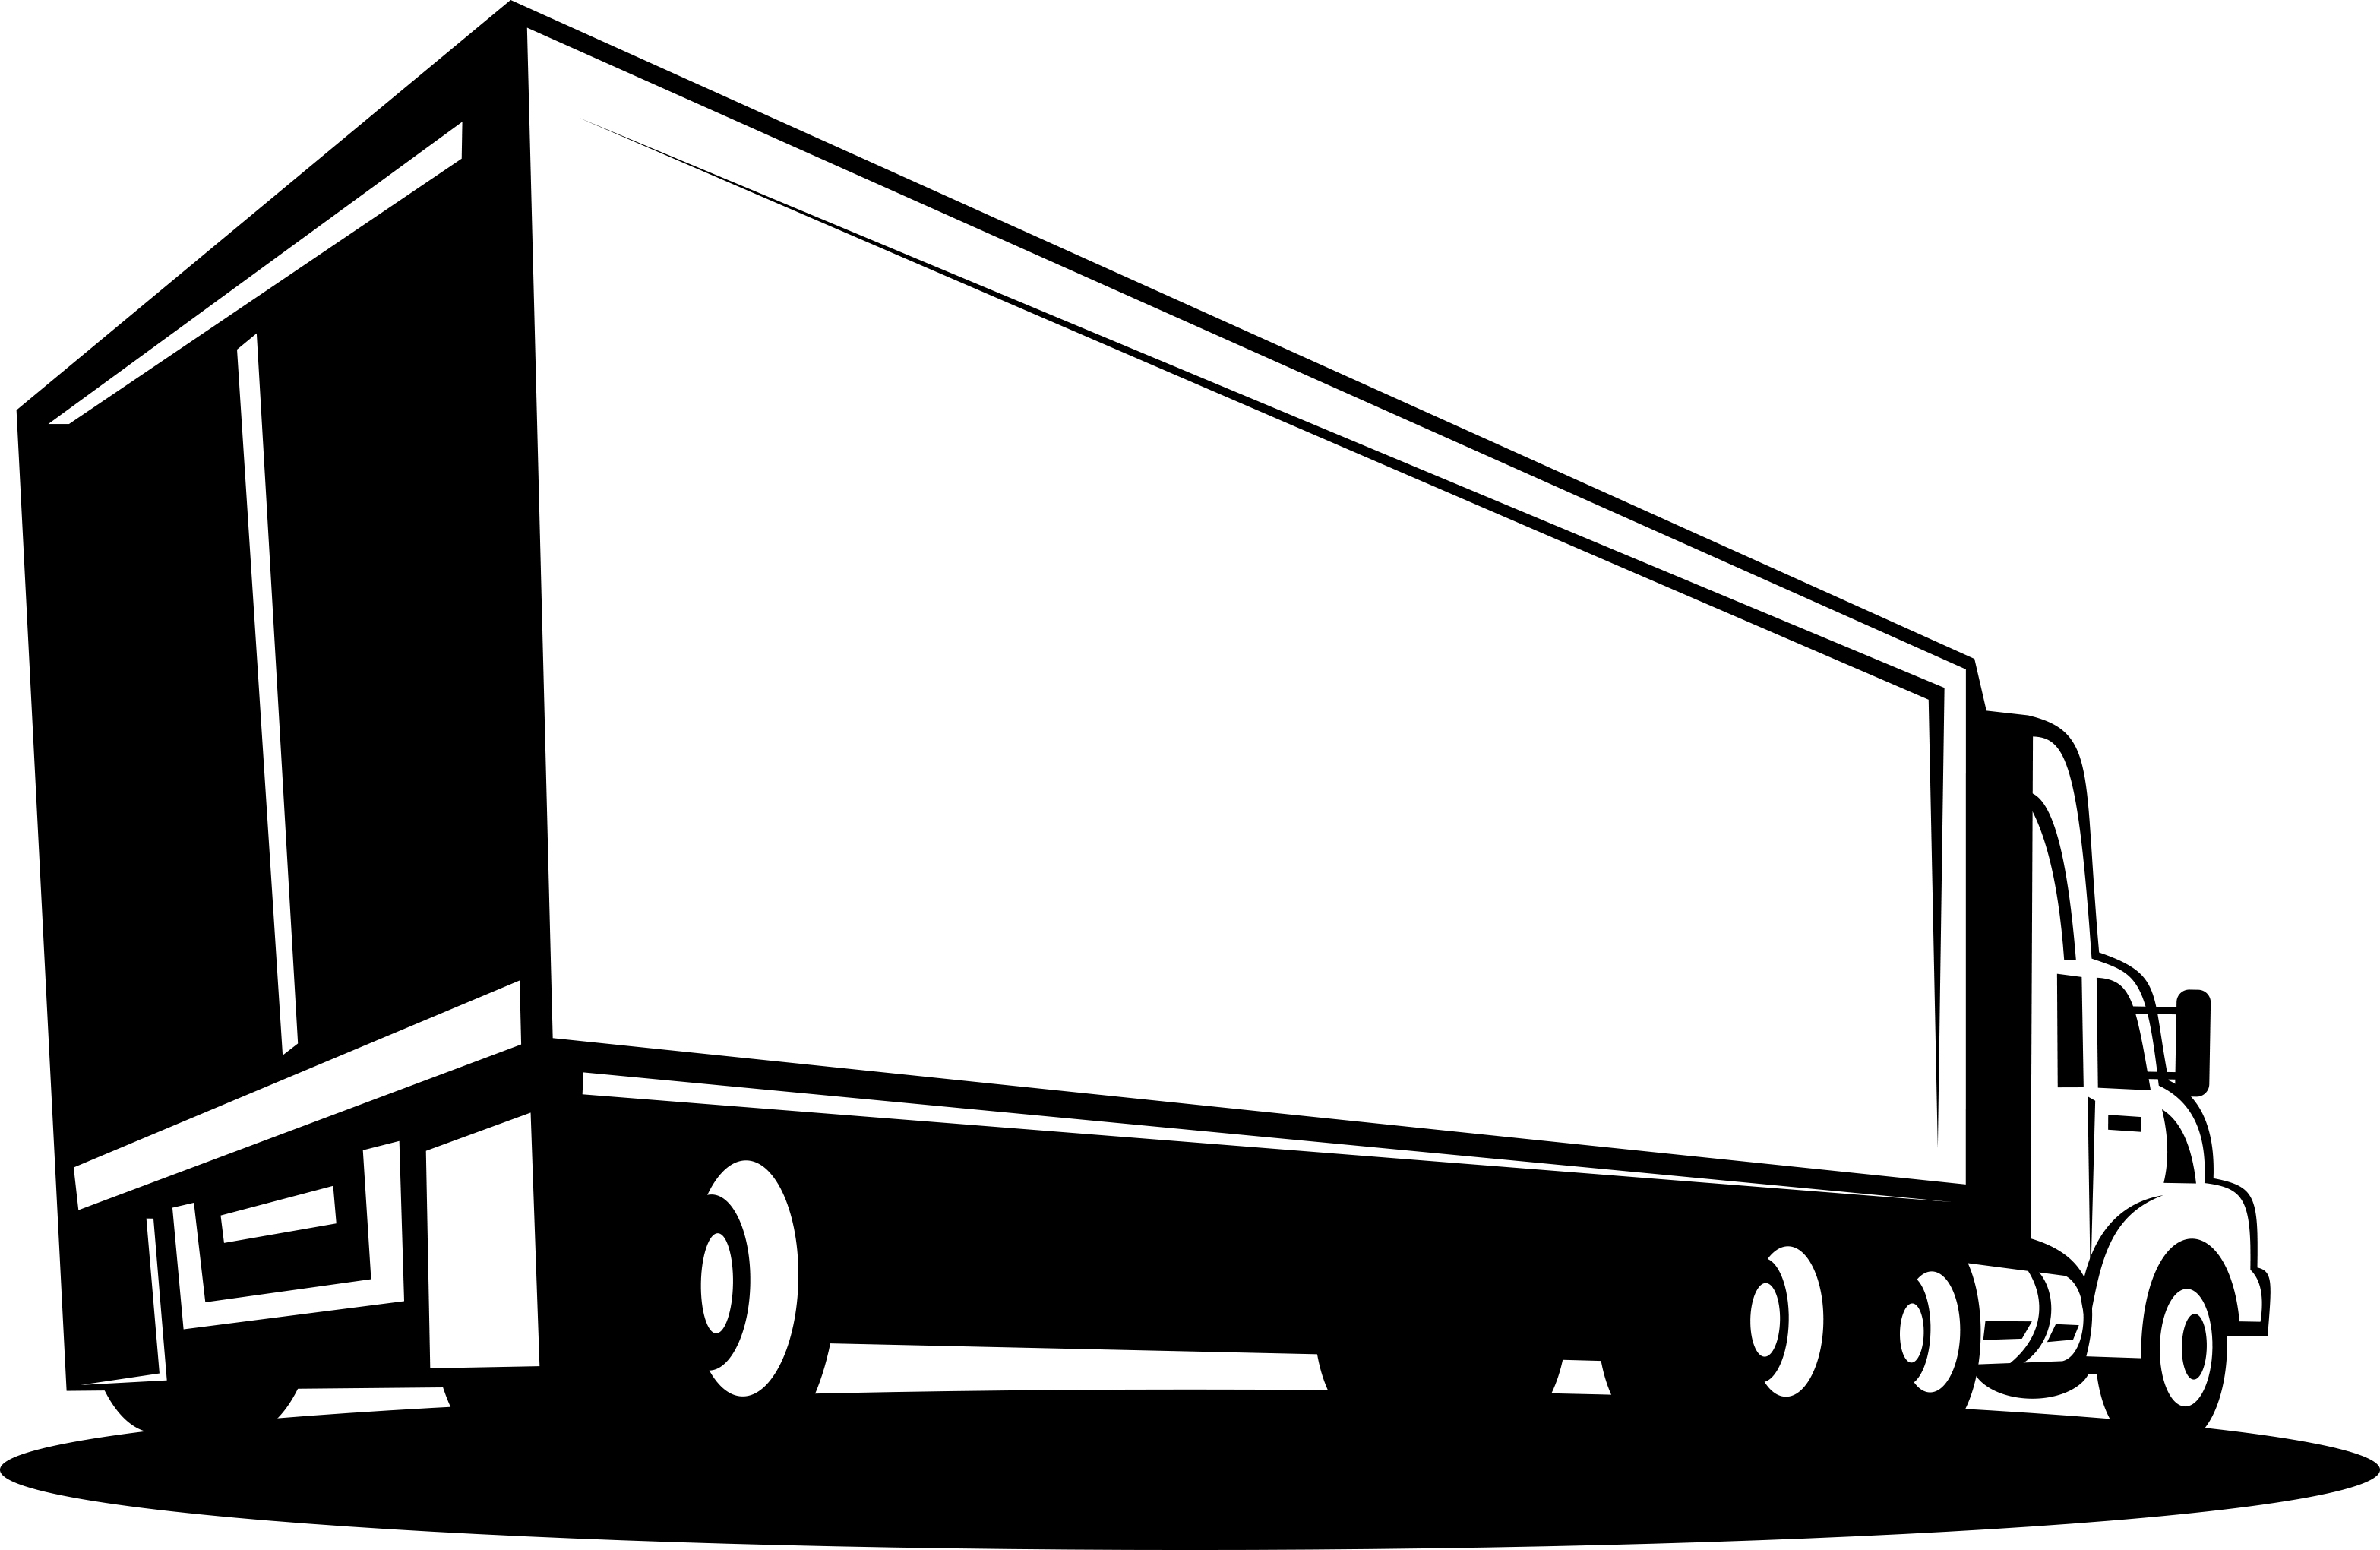 Tractor Trailer Accident Lawyer